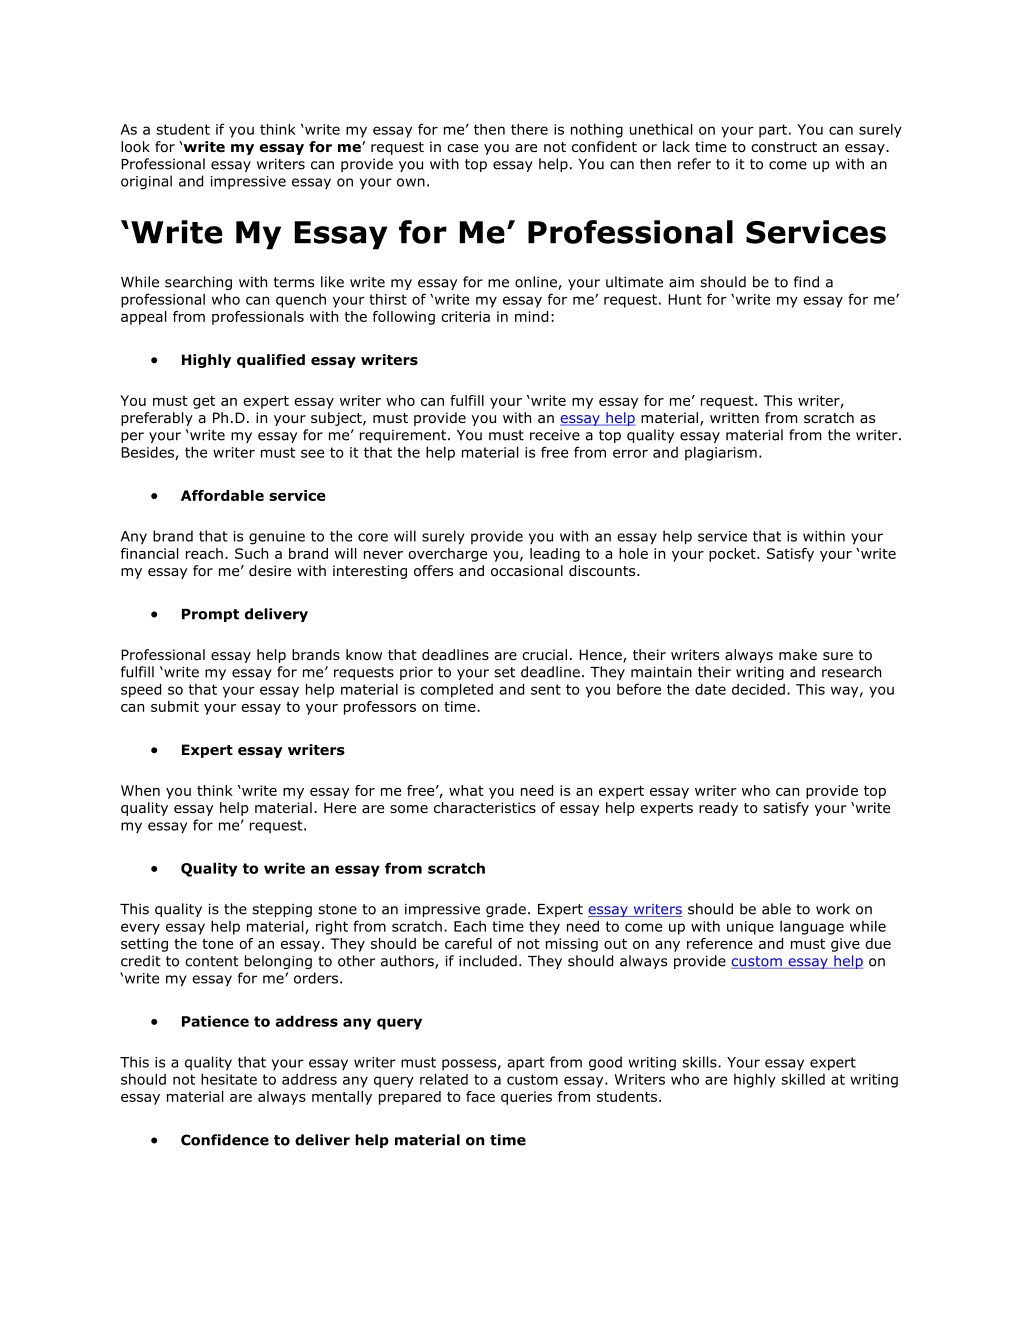 017 Write My Essay For Me Example As Student If You Think Surprising Reviews Canada Custom Cheap Full